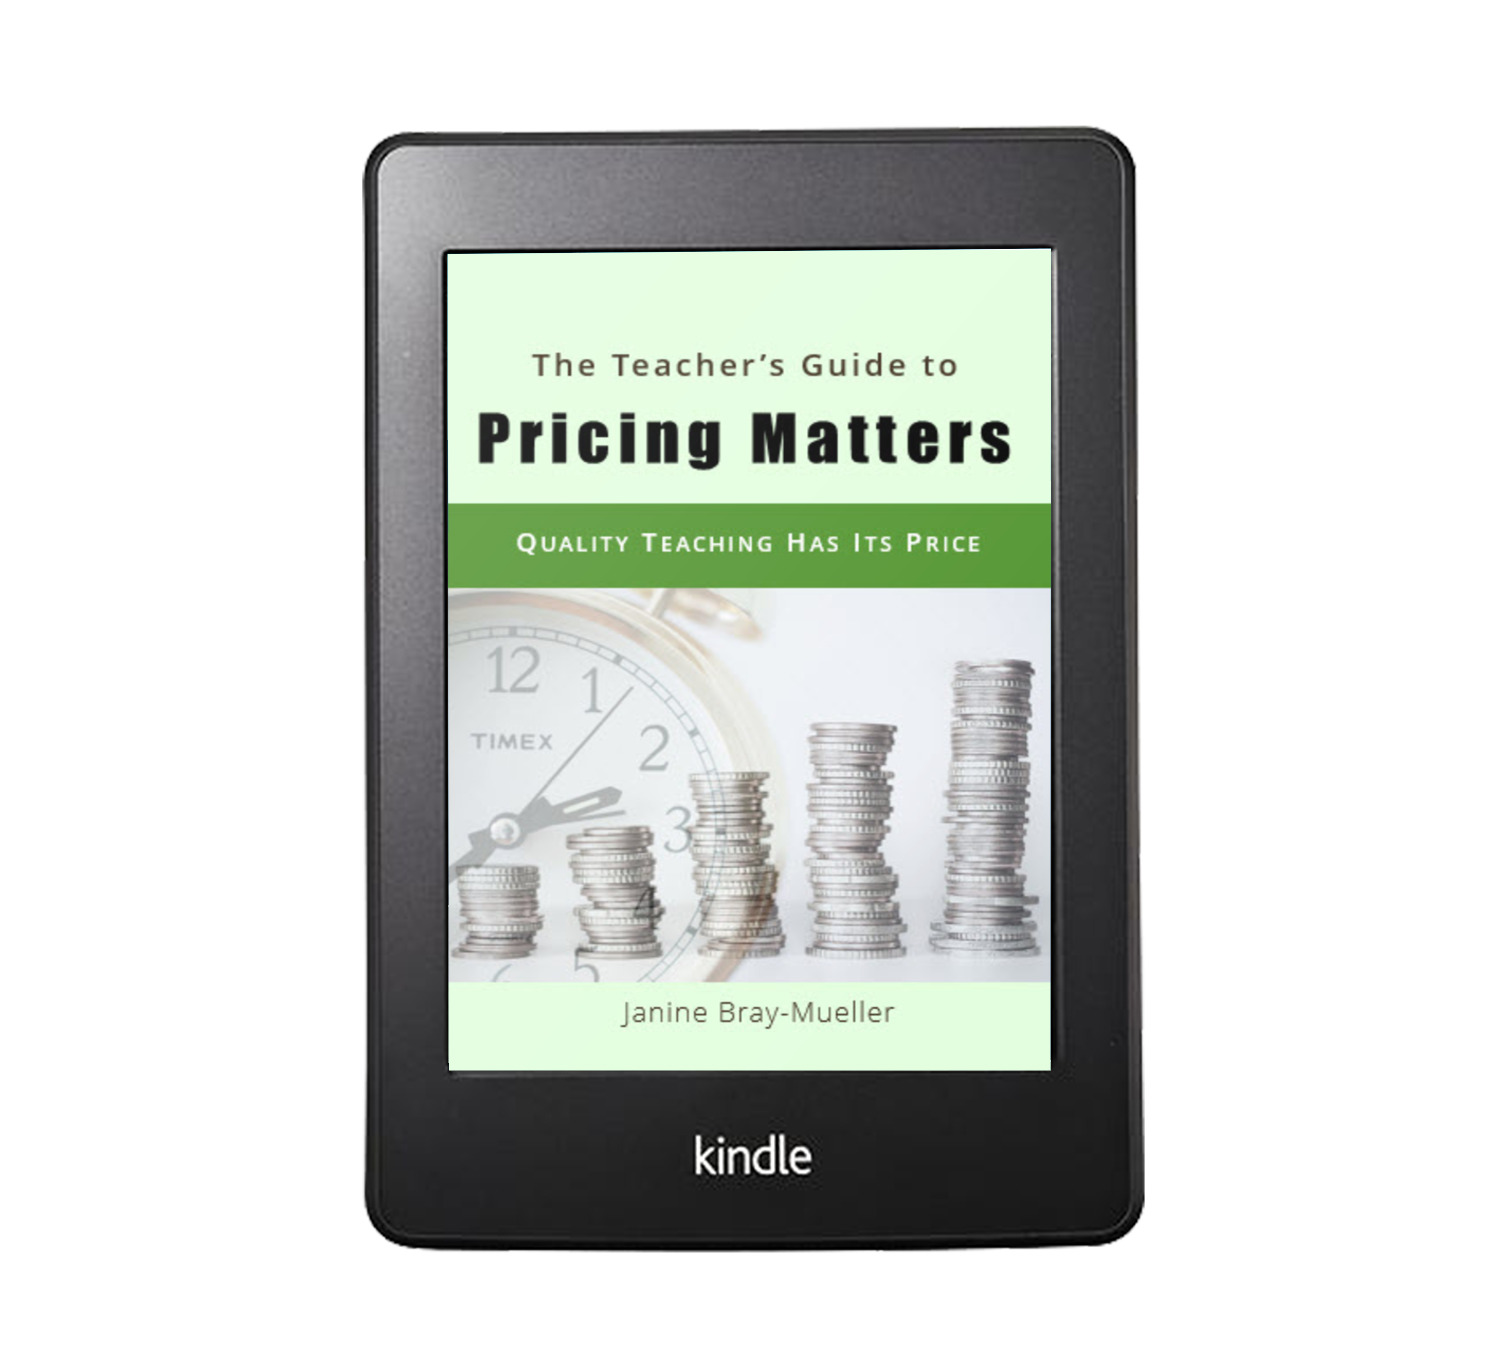 The Teacher's Guide to Pricing Matters Janine Bray-Mueller Book Cover